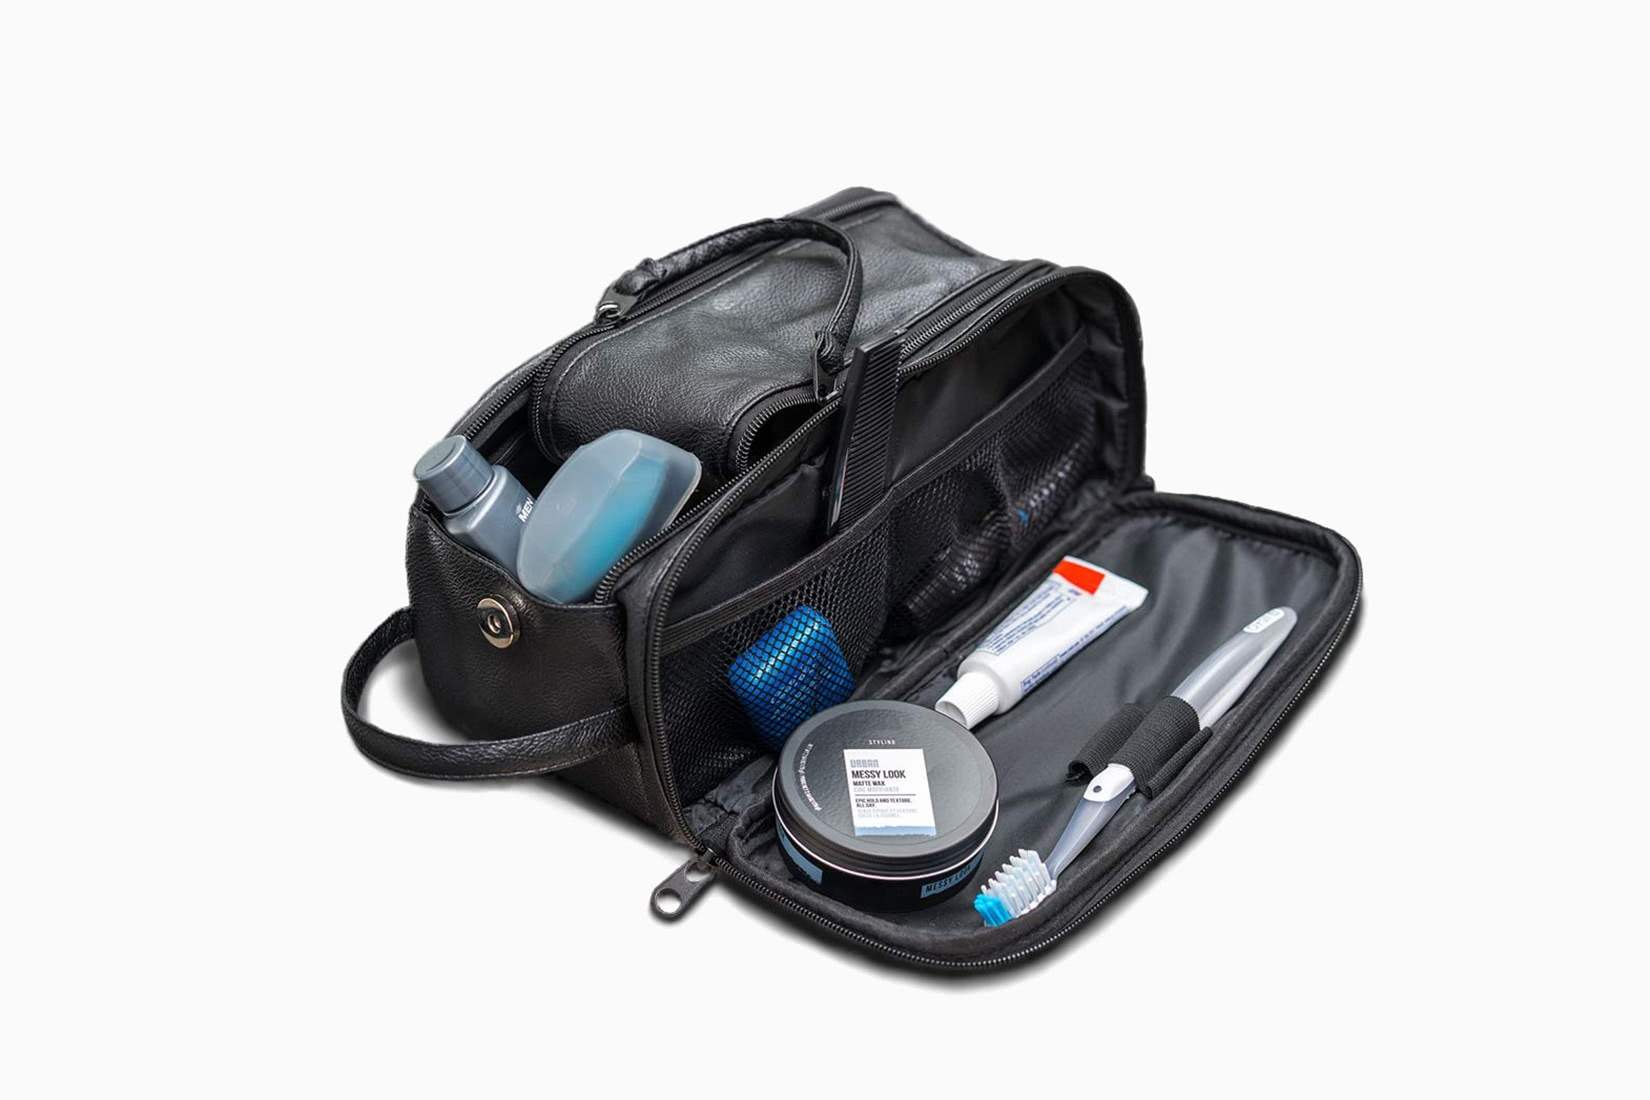 15 Best Toiletry Bags For Women Keep Your Cosmetics In Style